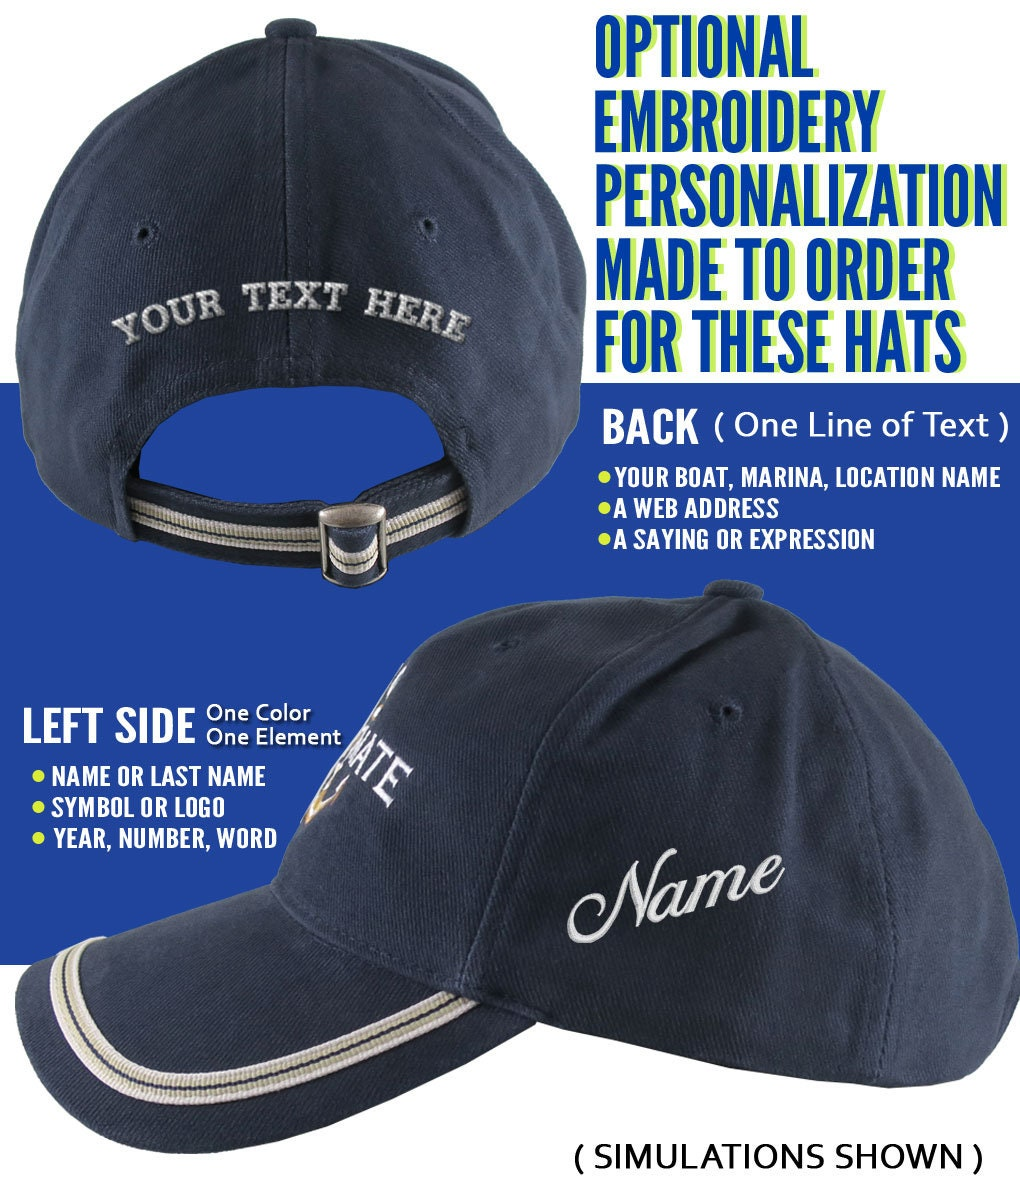 308bcc1fb53ff Nautical Star Anchor Captain and Crew Embroidery Adjustable Navy Blue Soft  Structured Baseball Cap with Options to Personalize Boat Name